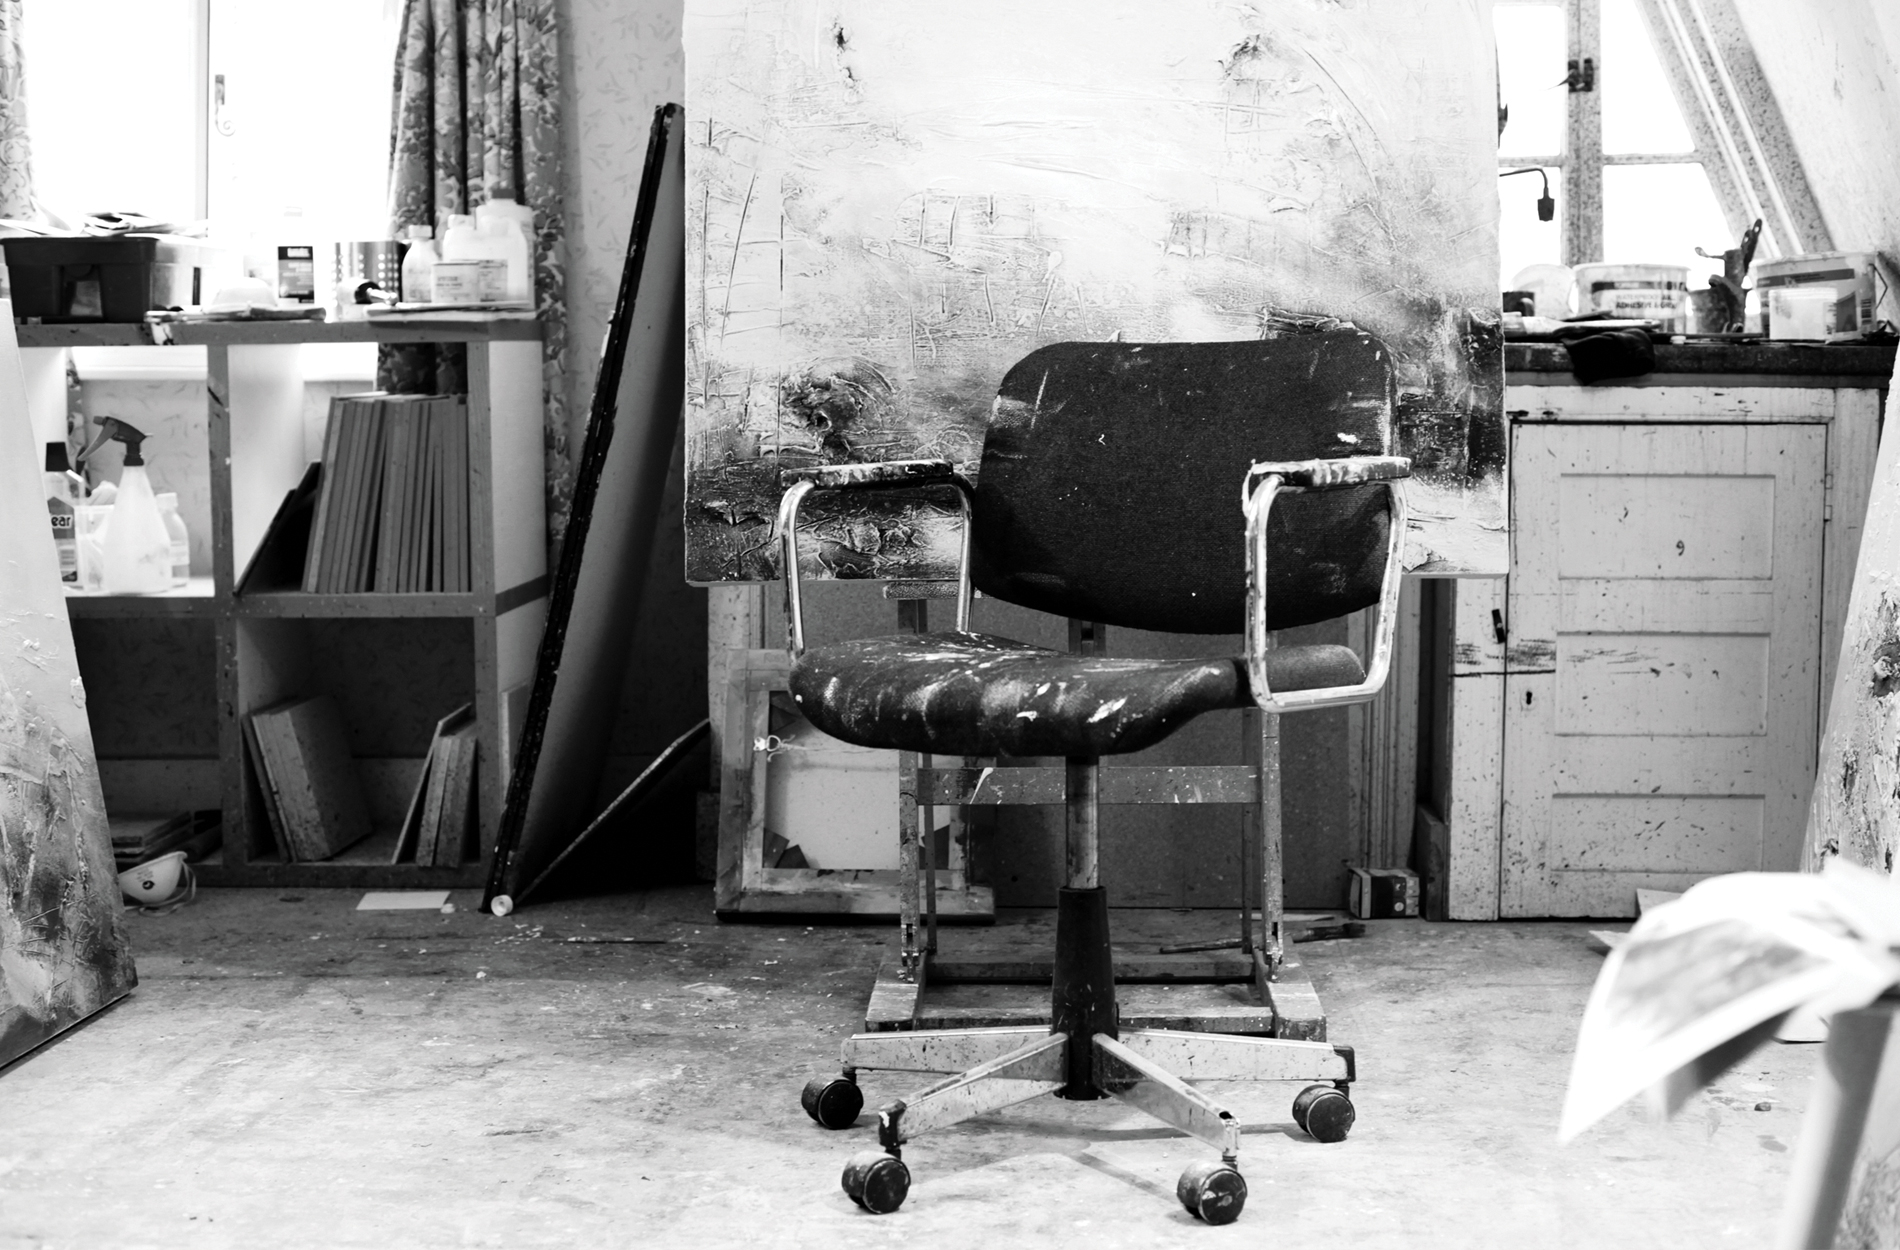 Location photography of an artists studio